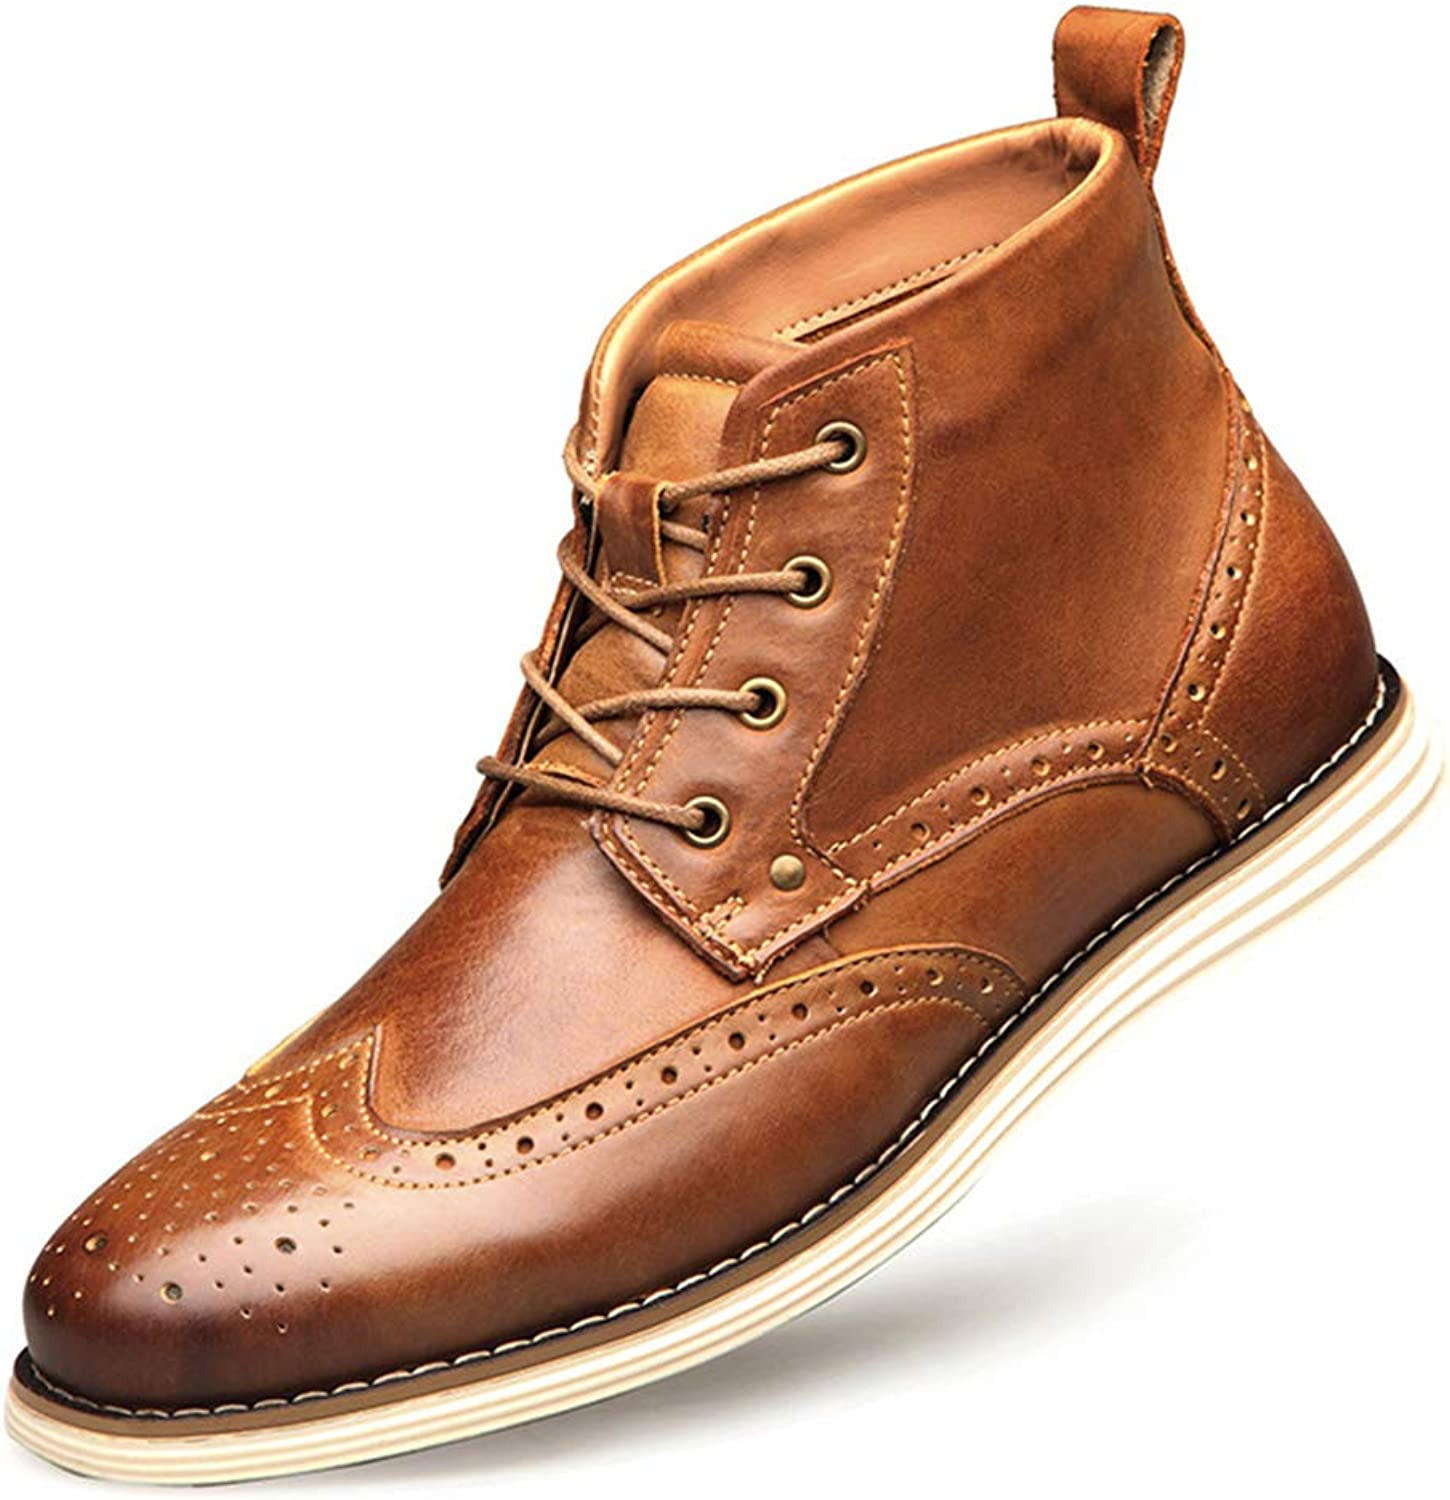 Mens Chelsea Ankle Boots Genuine Leather Brogue Carved Martin Boots for Hiking Work High Top Lace ups shoes Adult Chukka Boots